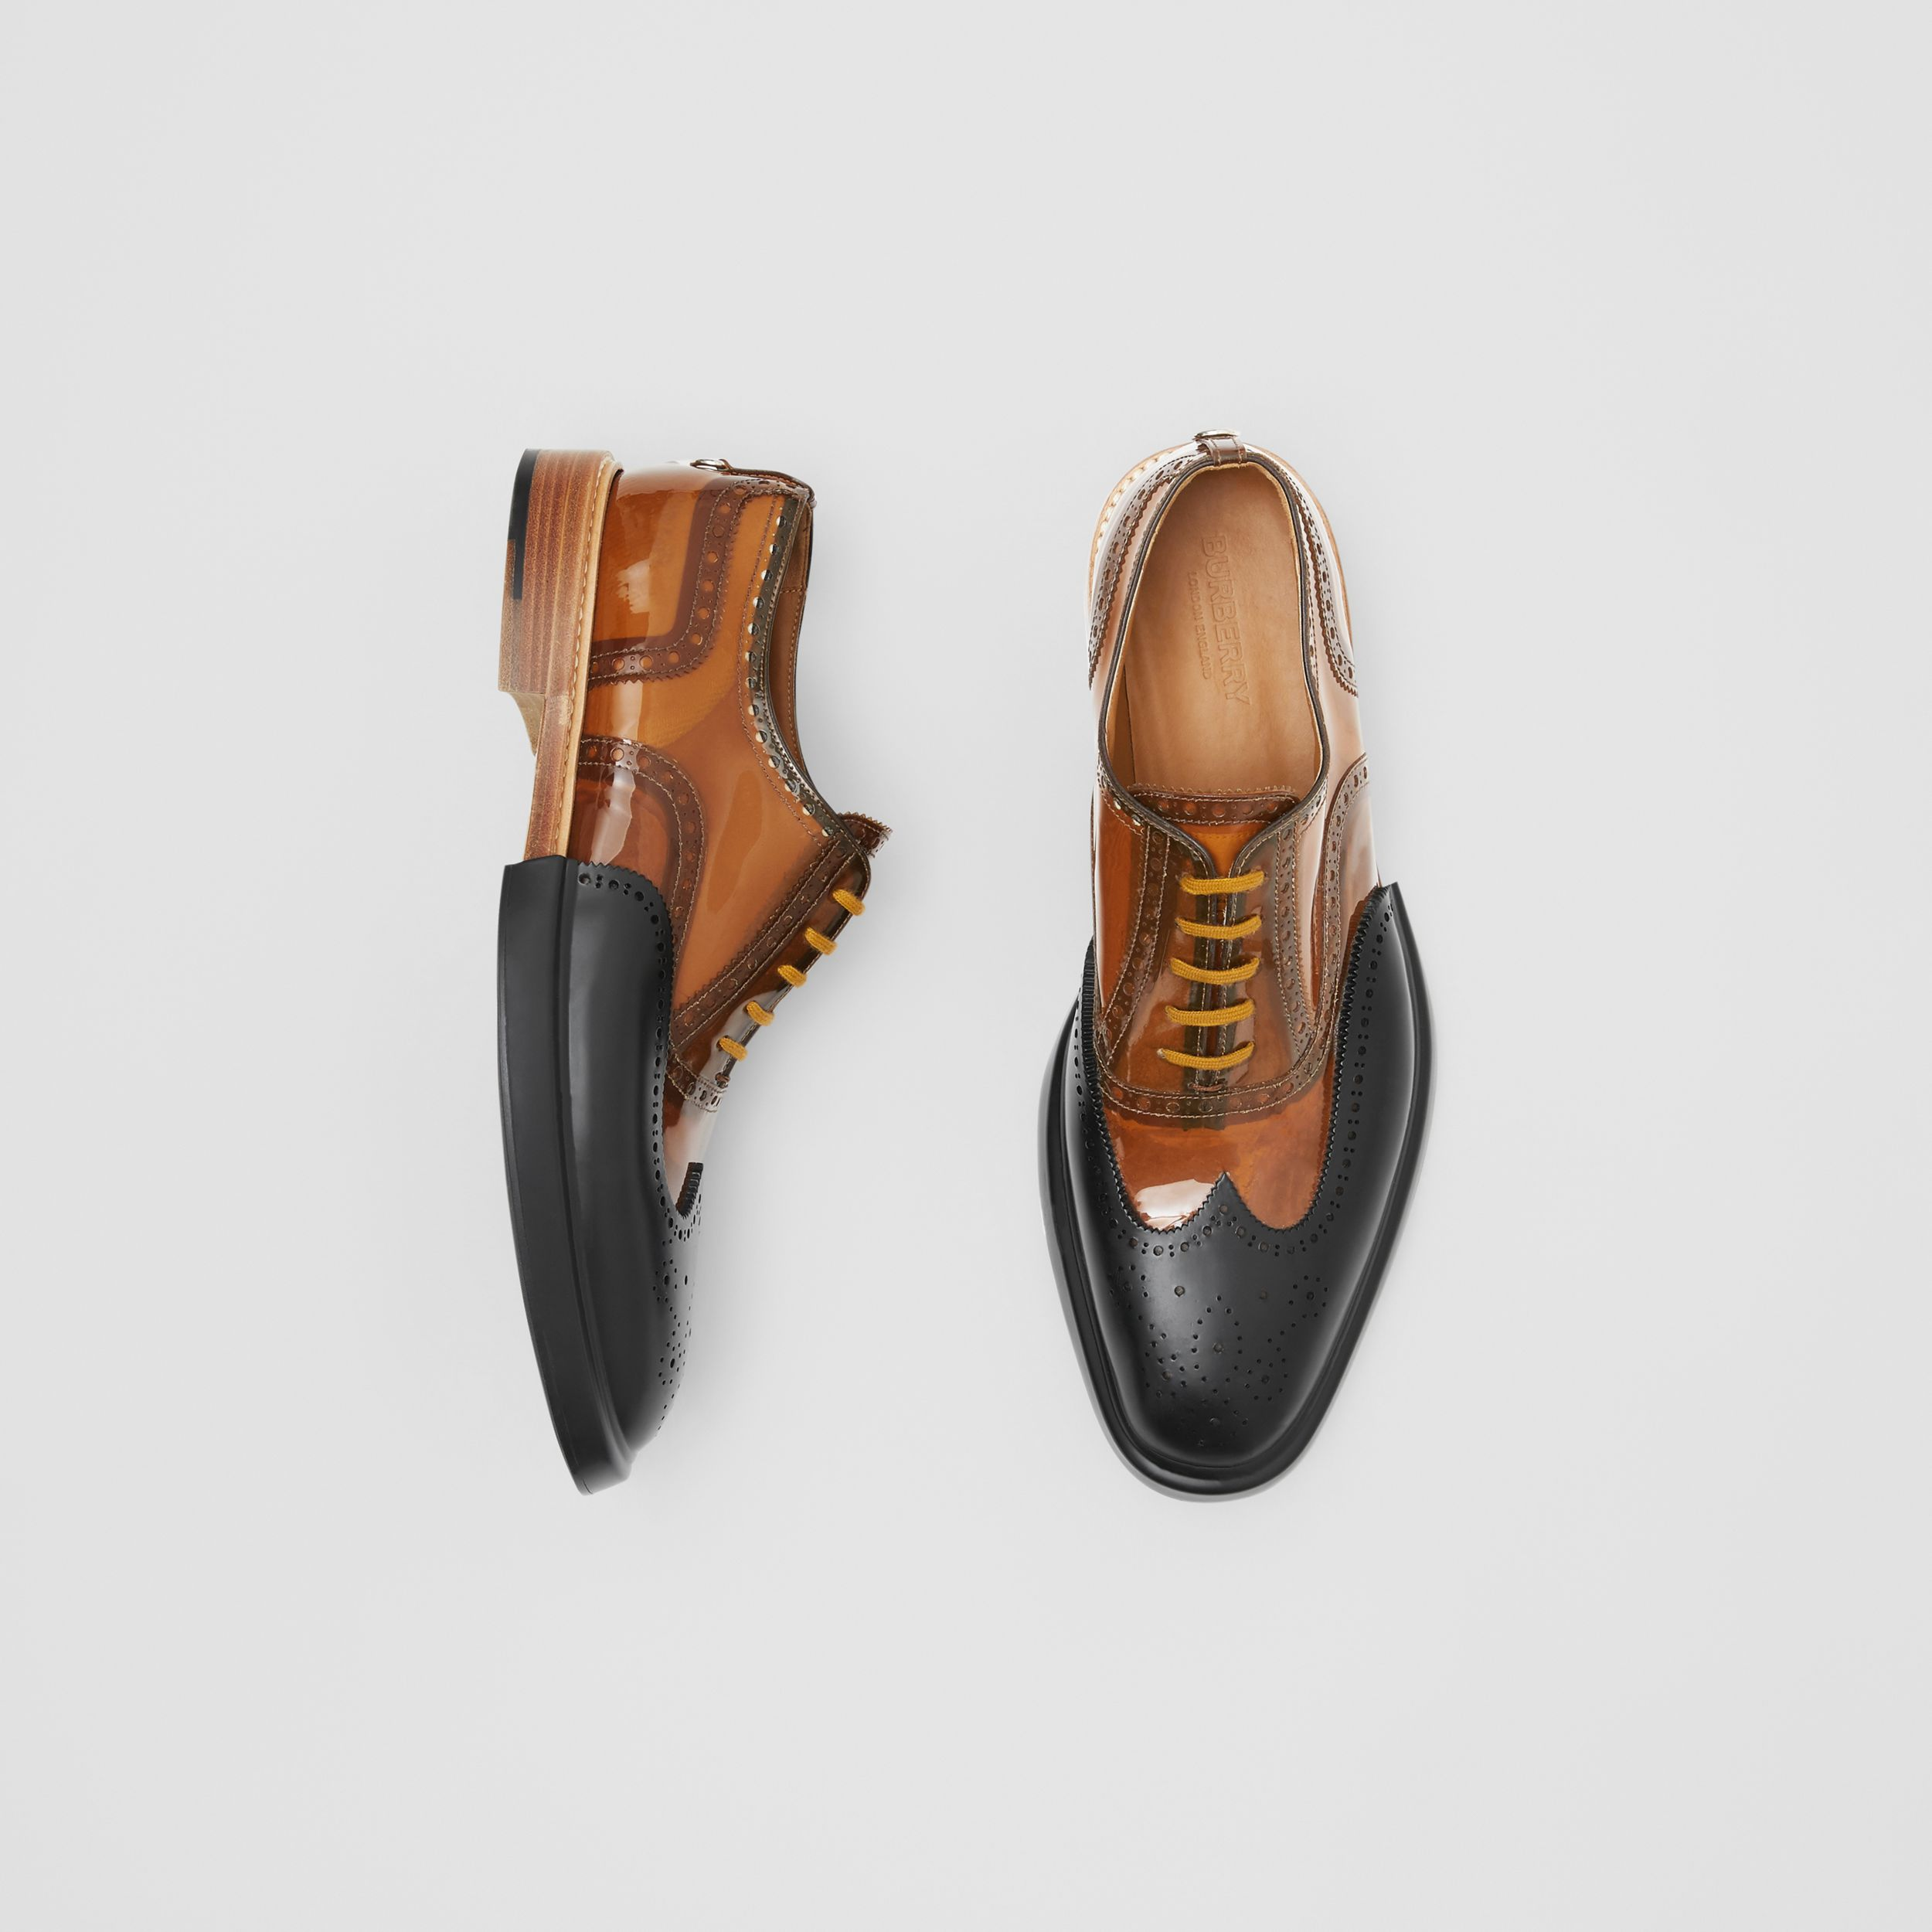 Toe Cap Detail Vinyl and Leather Oxford Brogues in Brown/black - Men | Burberry - 1